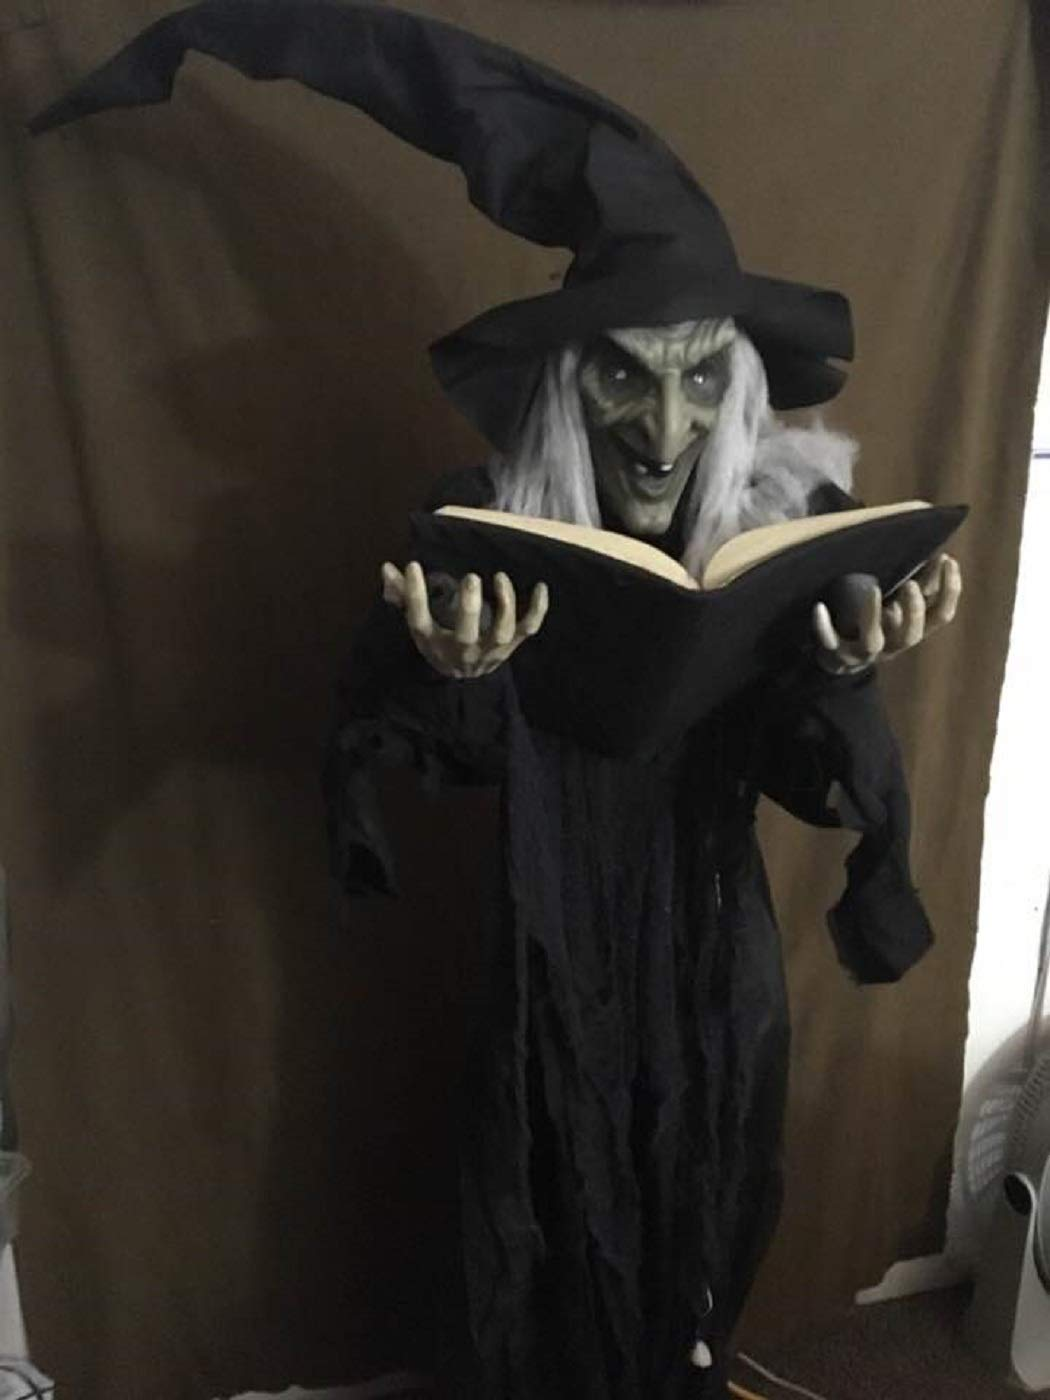 Nantucket Witchy Winifred Holding Spellbook Halloween Standing Prop Decoration by Nantucket (Image #1)